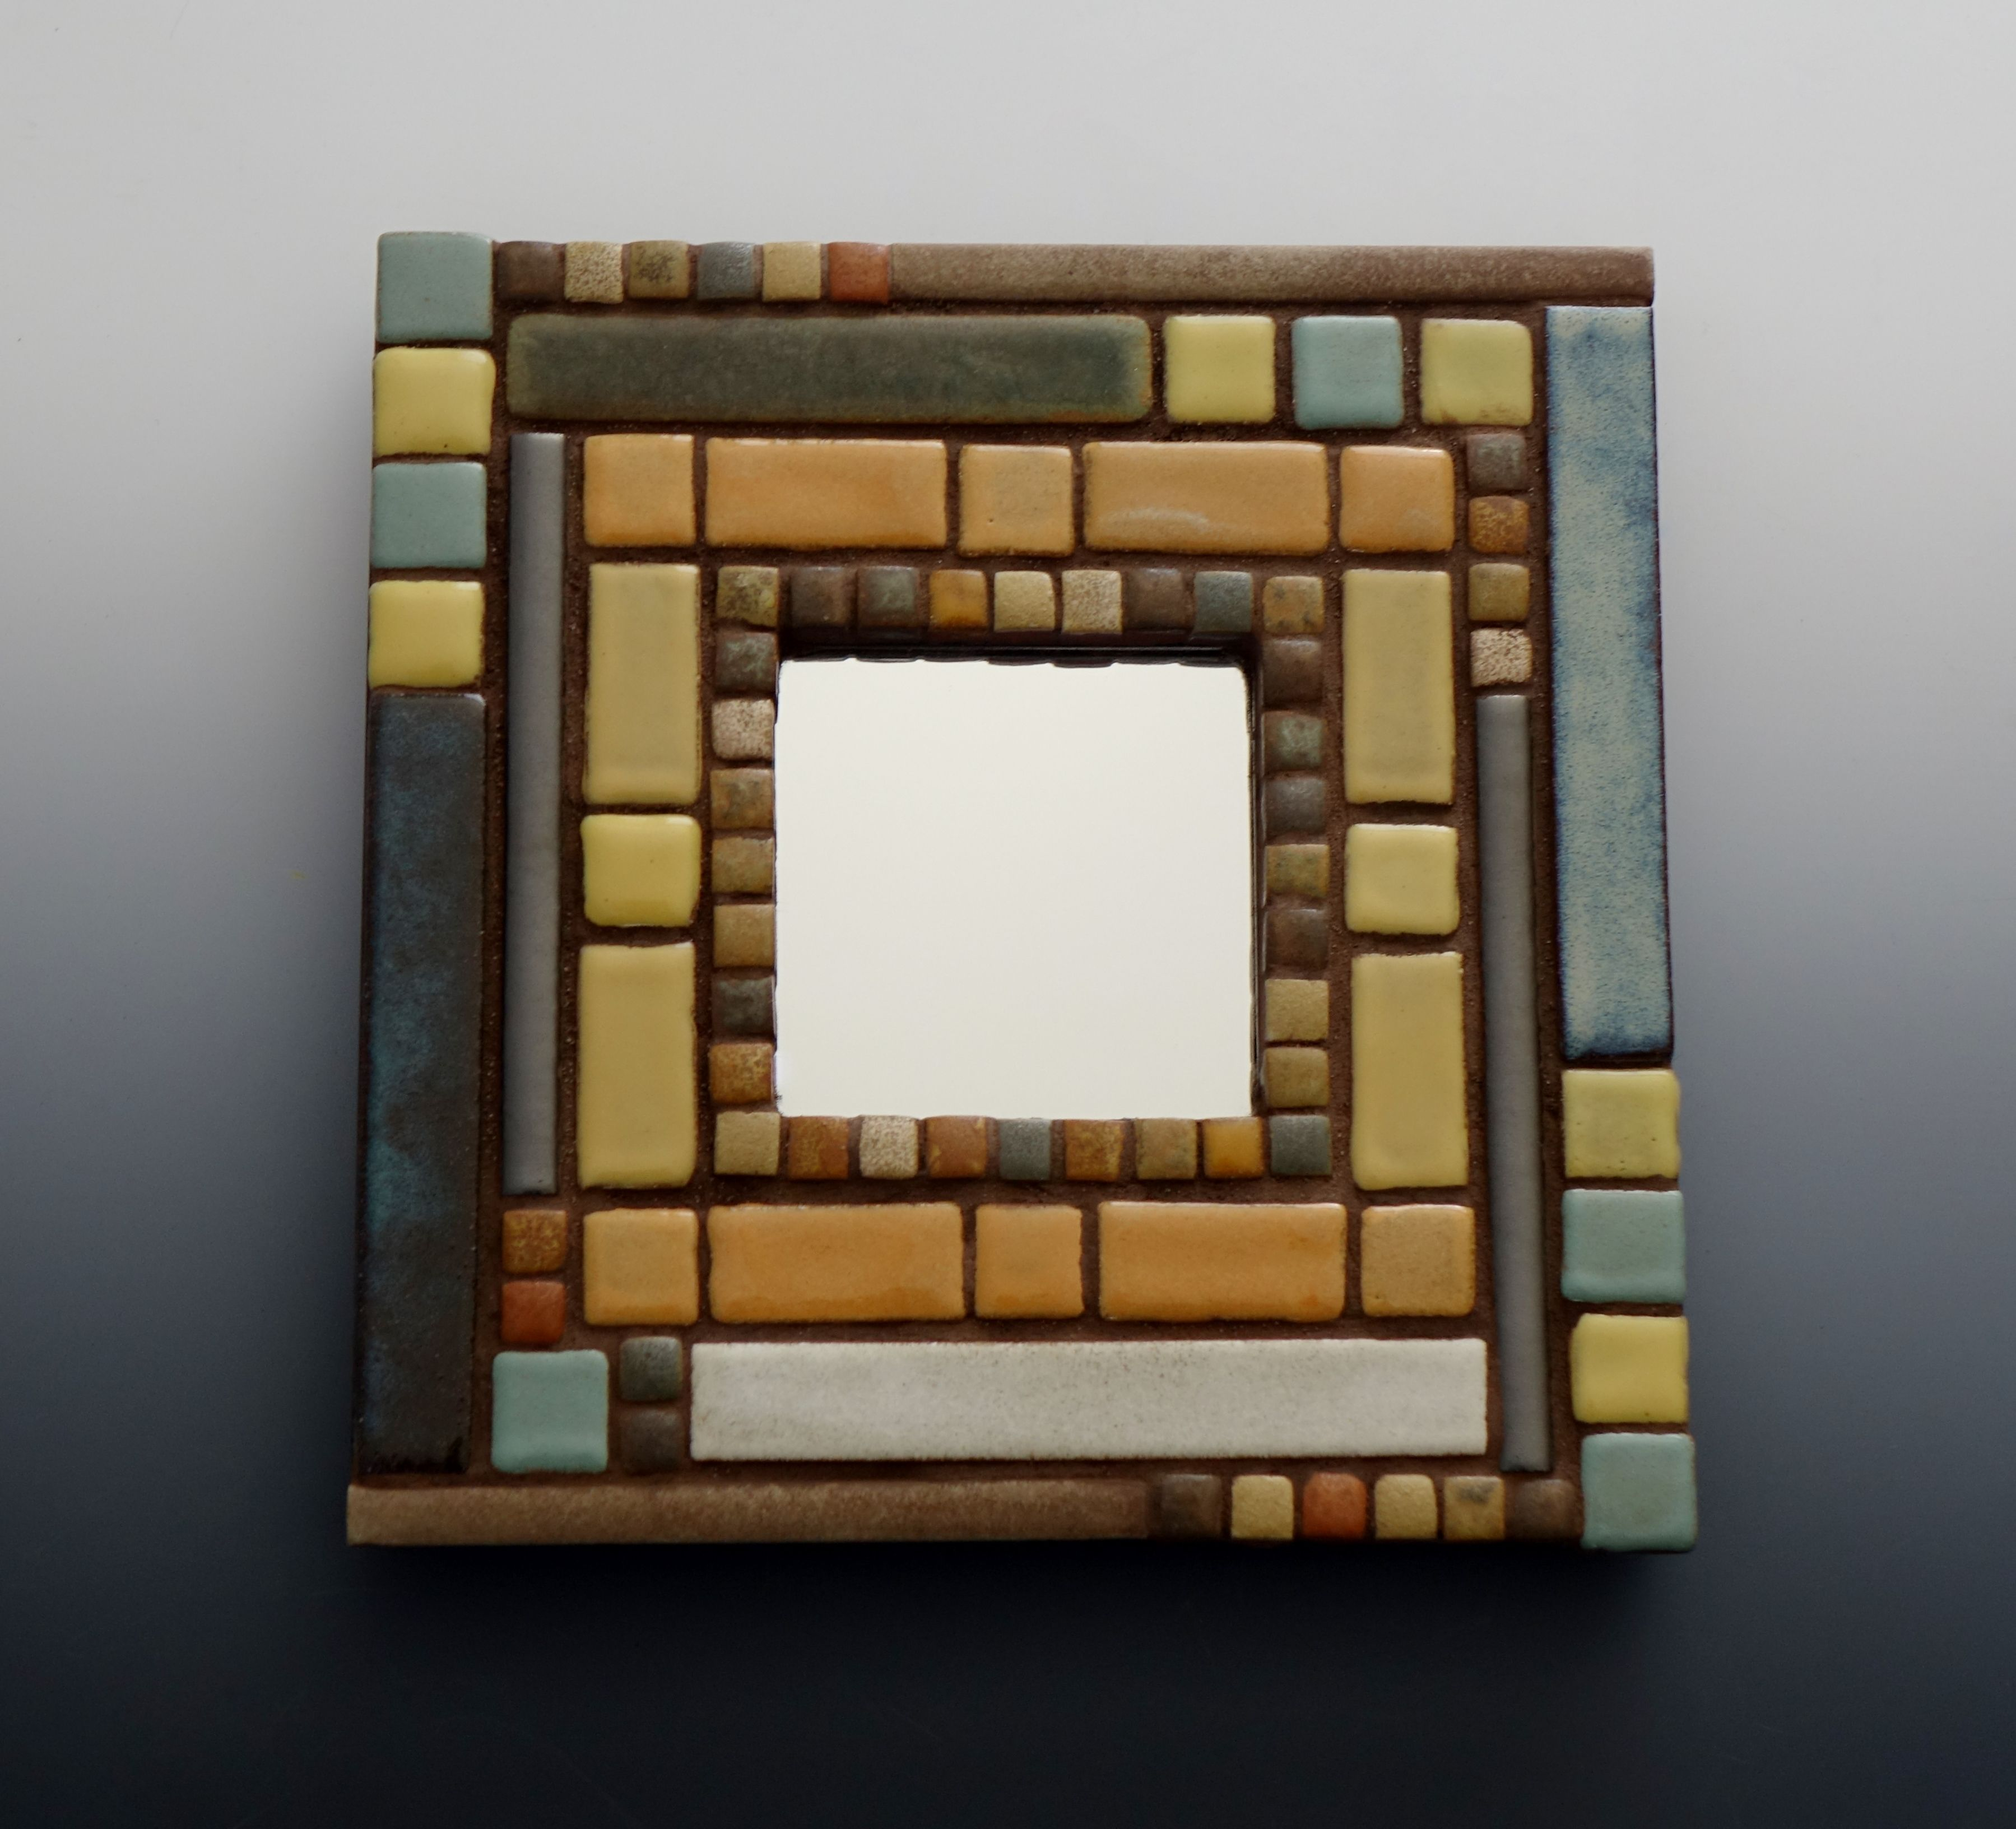 Small 10 X 10 Inch Mosaic Mirror Designed And Created By Karen J Lauseng In 2020 Mosaic Mirror Mosaic Art Mirror Designs